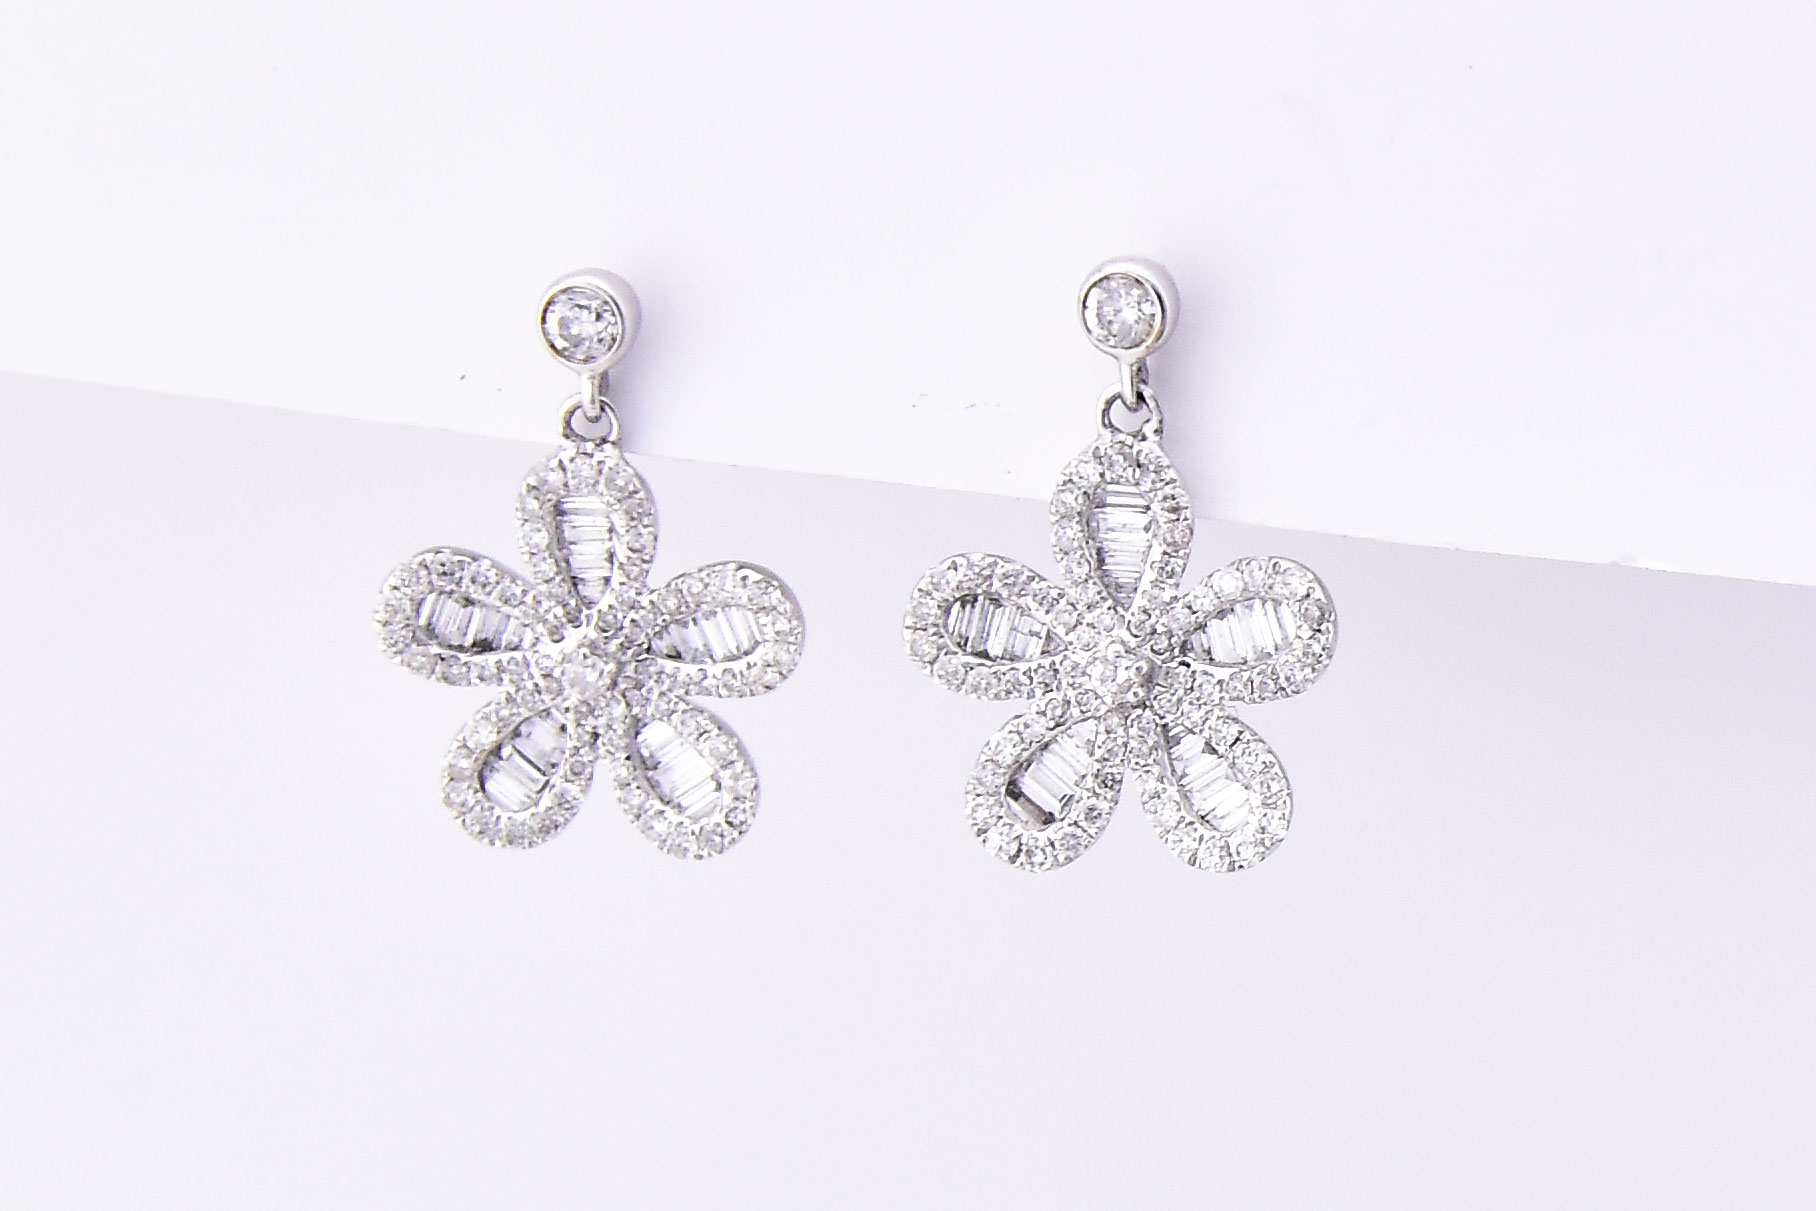 Over 1 Carat Total Weight Floral Design Diamond Earrings